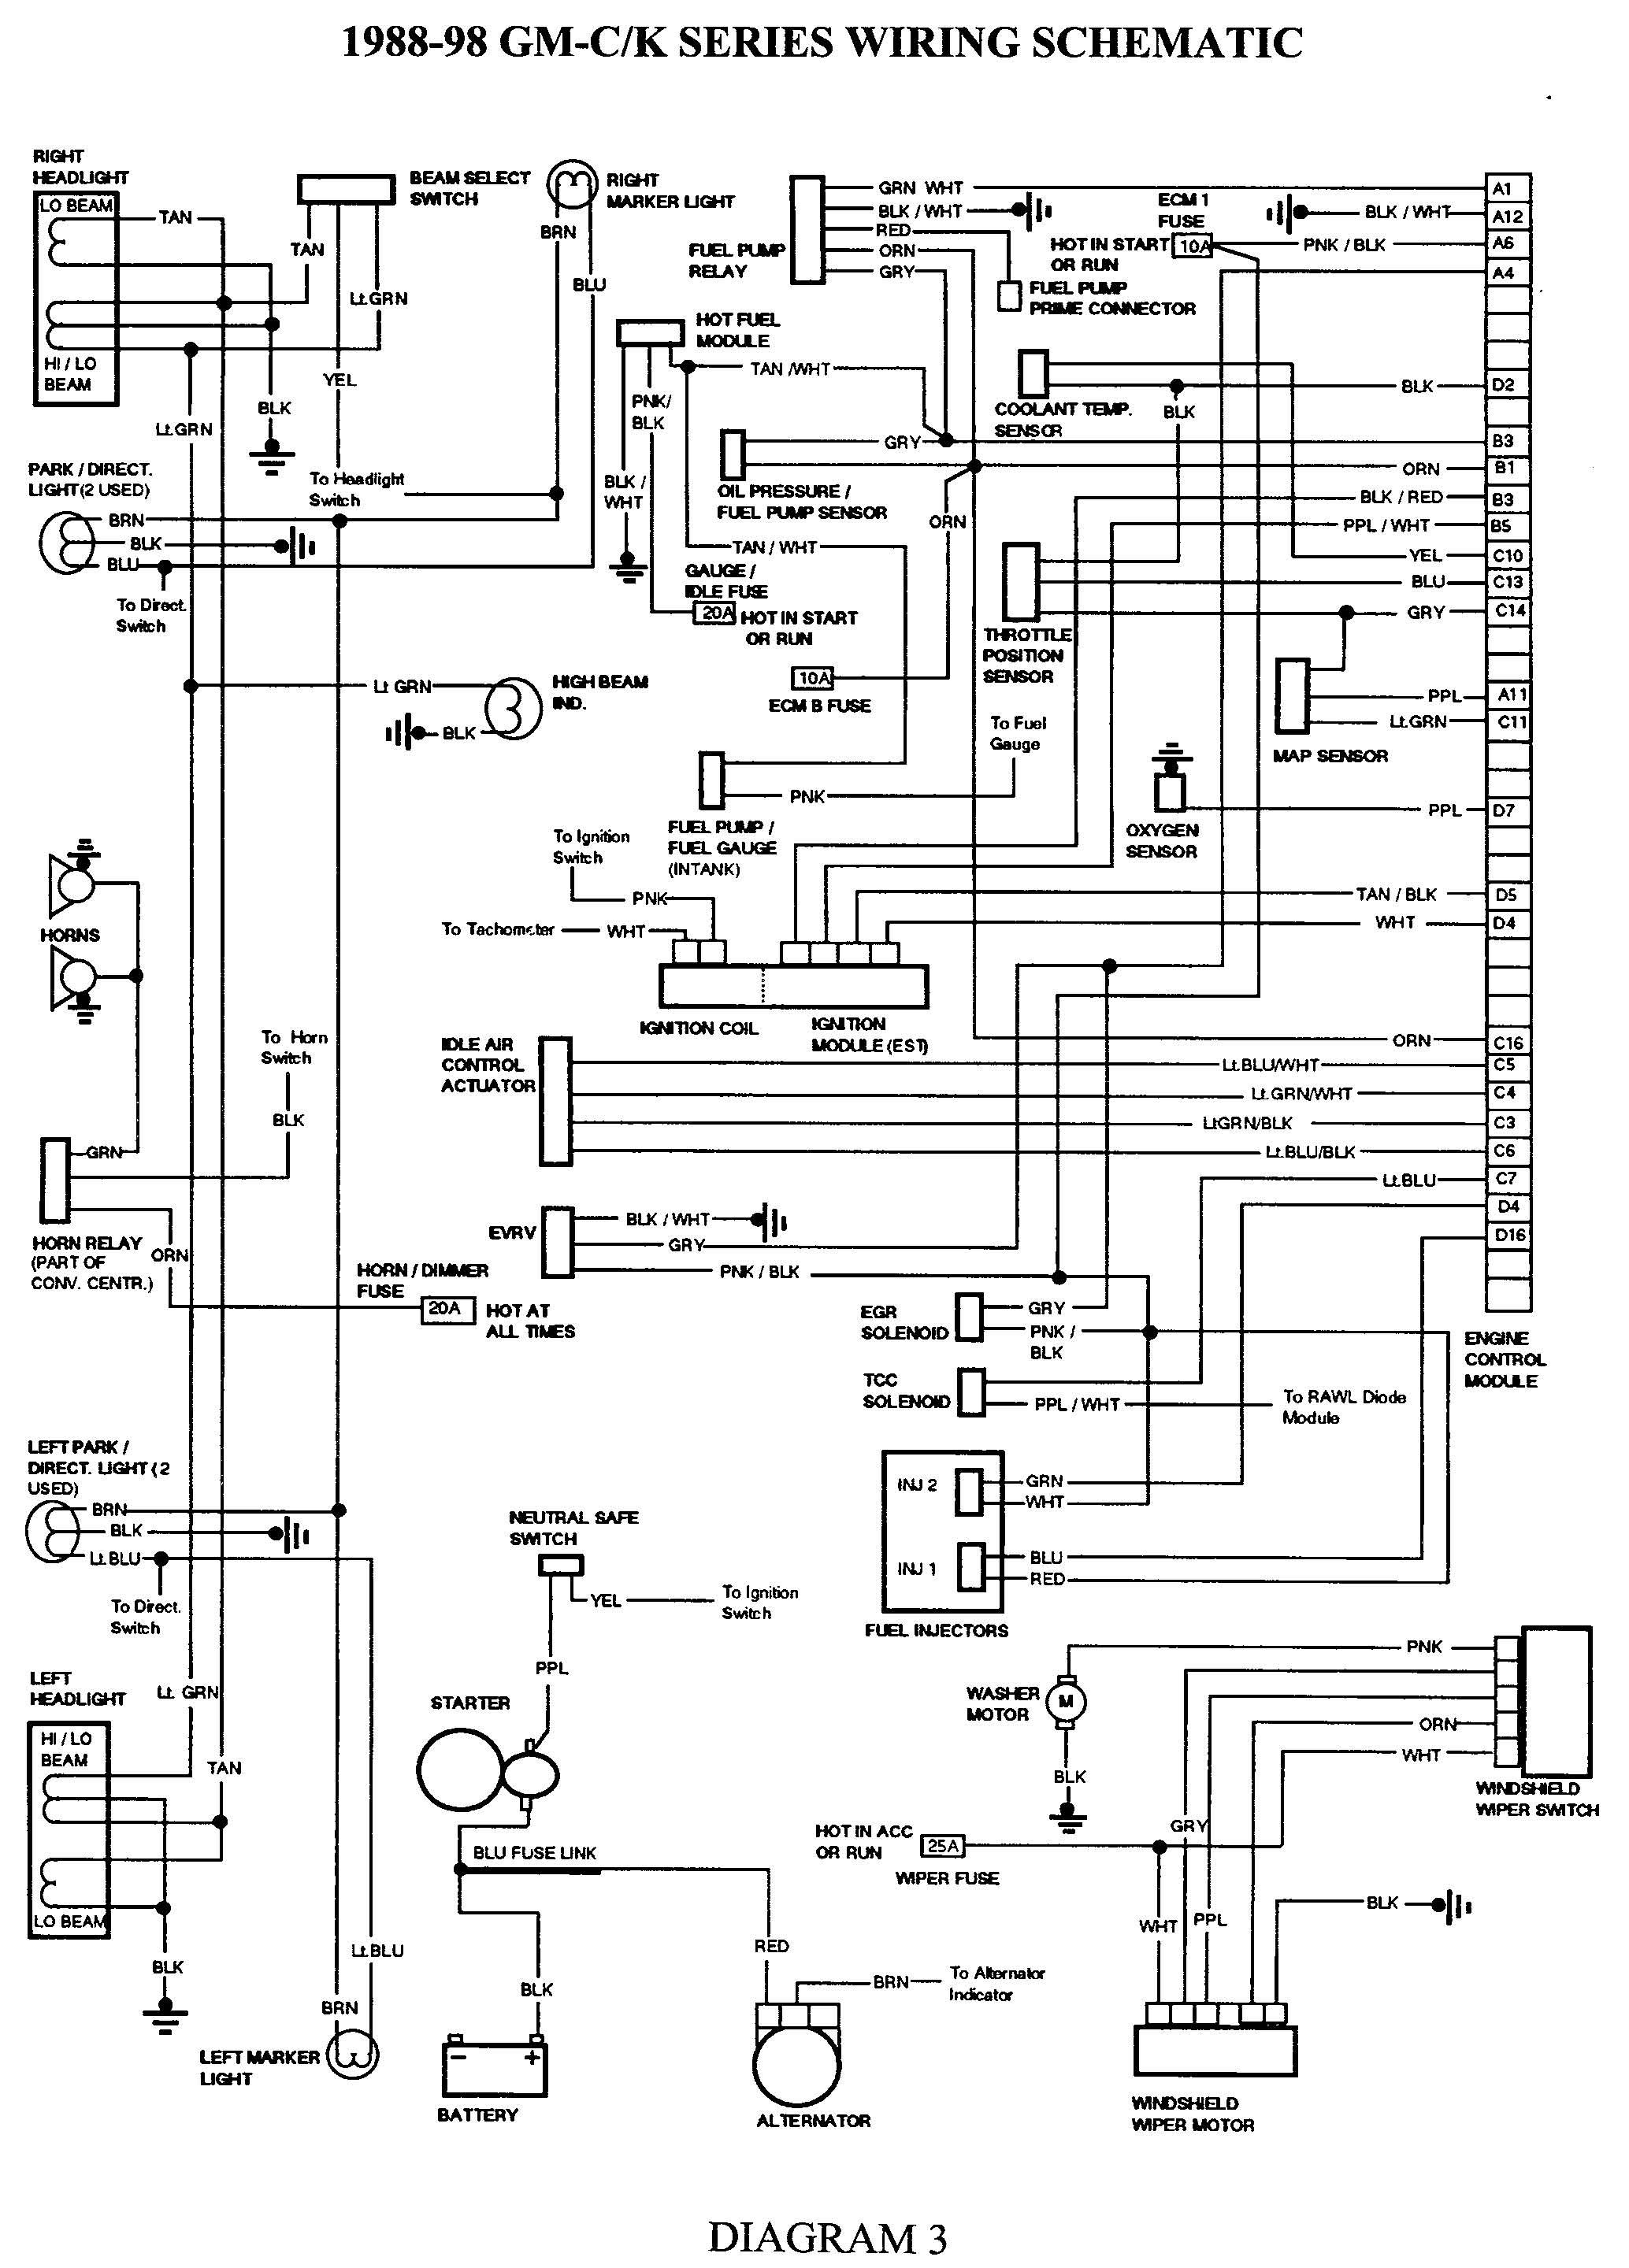 1998 Chevy Fuse Diagram - Wiring Diagram Data Oreo - 1998 Chevy S10 Wiring Diagram